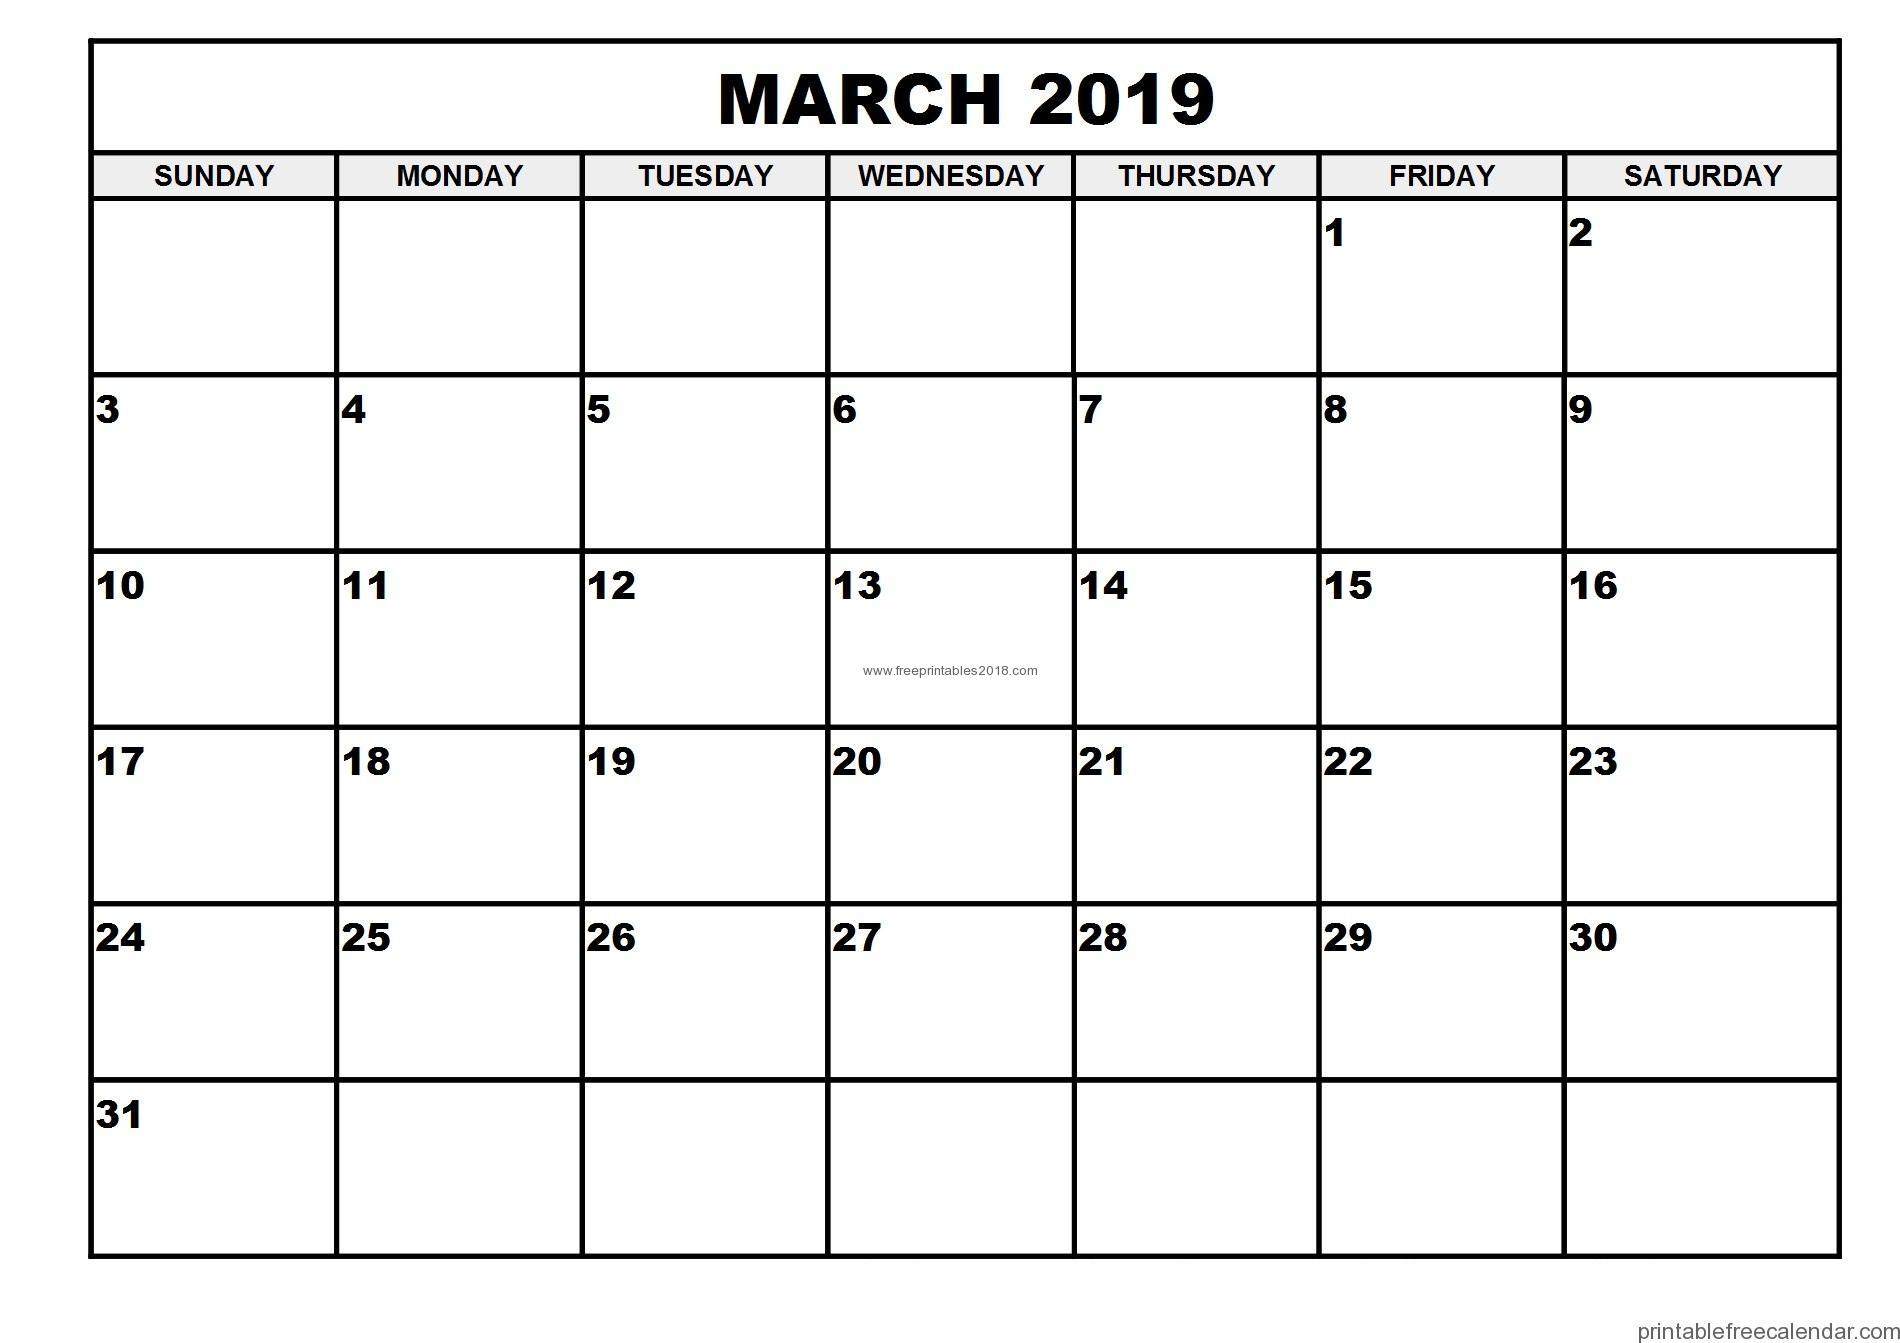 Free Printable March 2019 Calendar Templates | Free Printables 2019 within Free Calendar Templates Printable